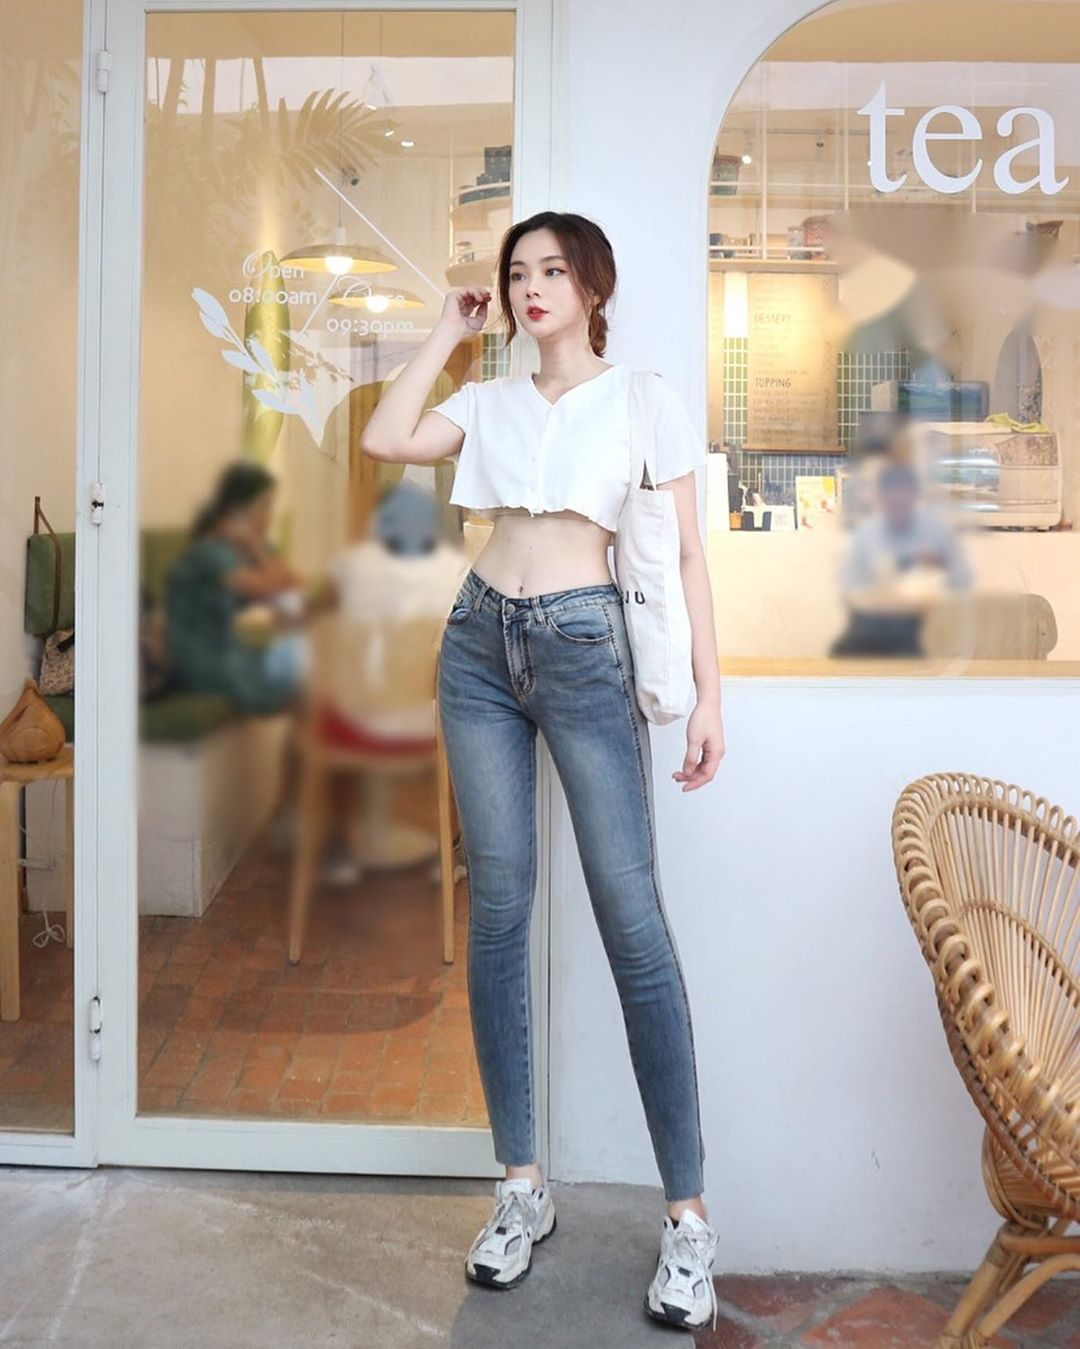 [DENIM PLUS JEANS SHOP] noi de nang thoa man niem dam me quan jeans bat tan (1)